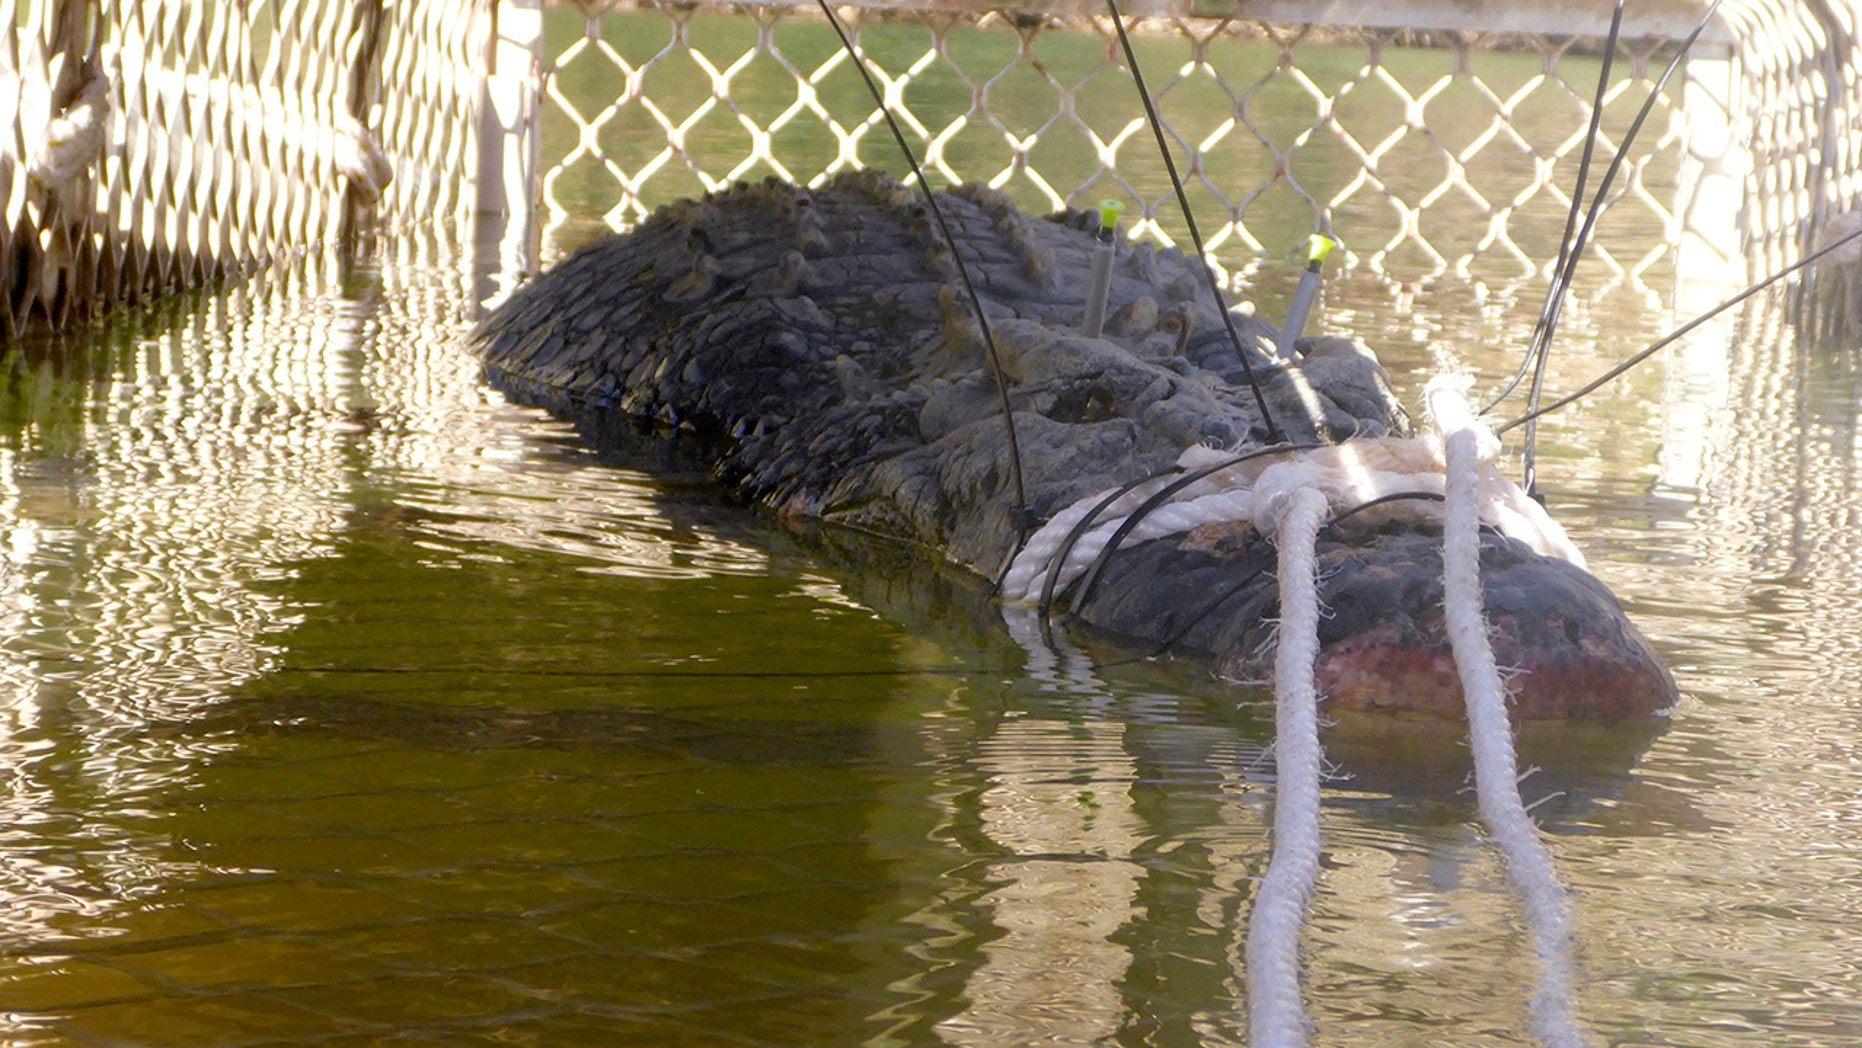 A 15-foot, 1,300-pound saltwater croc was captured in Australia.